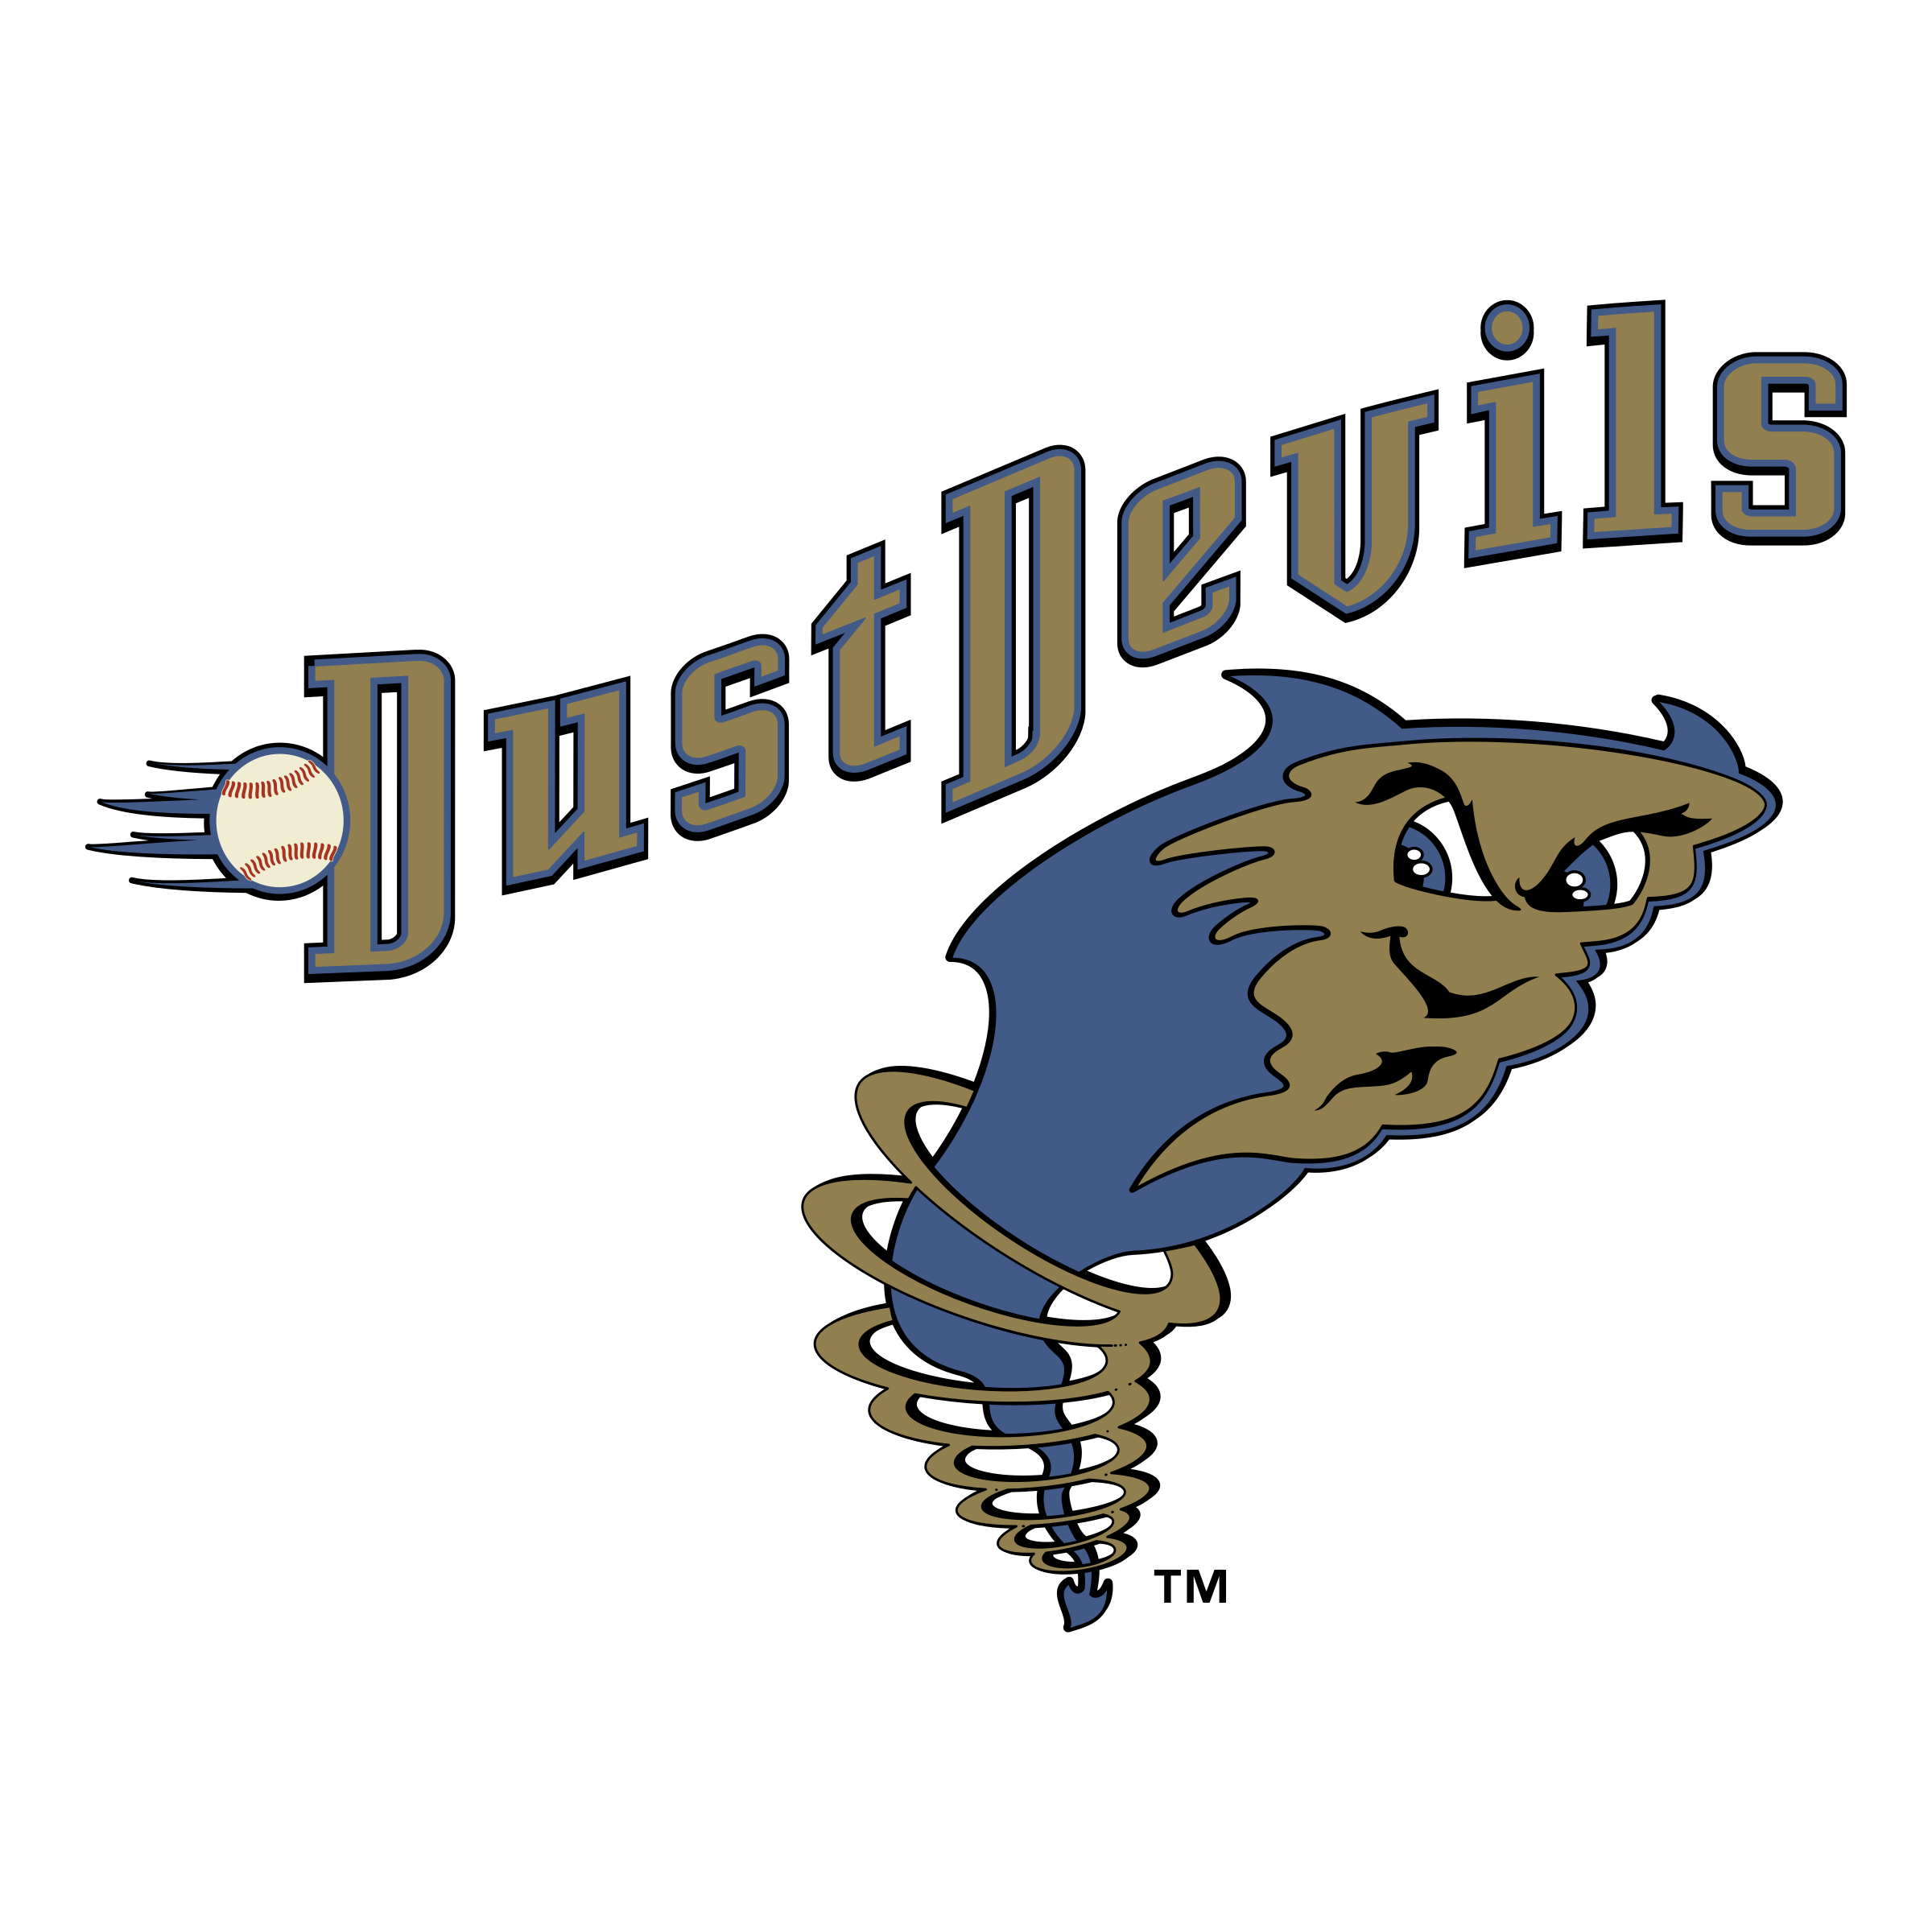 Dust clipart svg. Tri city devils logo